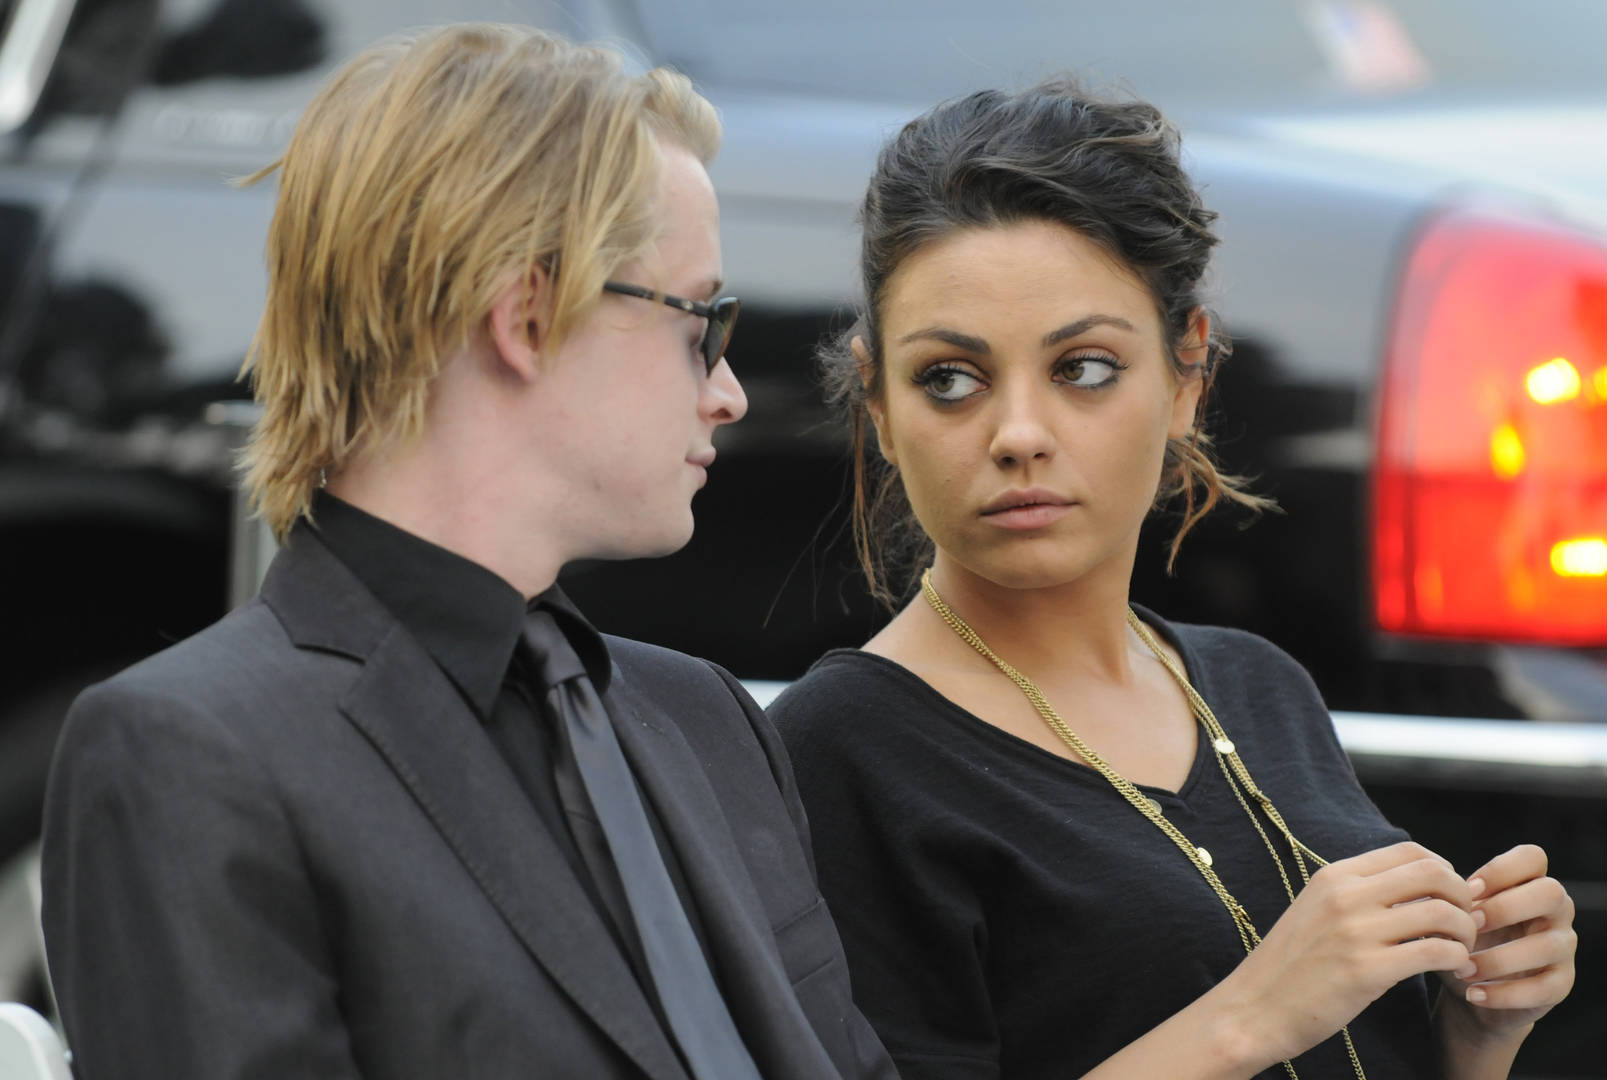 """Macaulay Culkin Defends Friendship With Michael Jackson As """"Normal"""""""